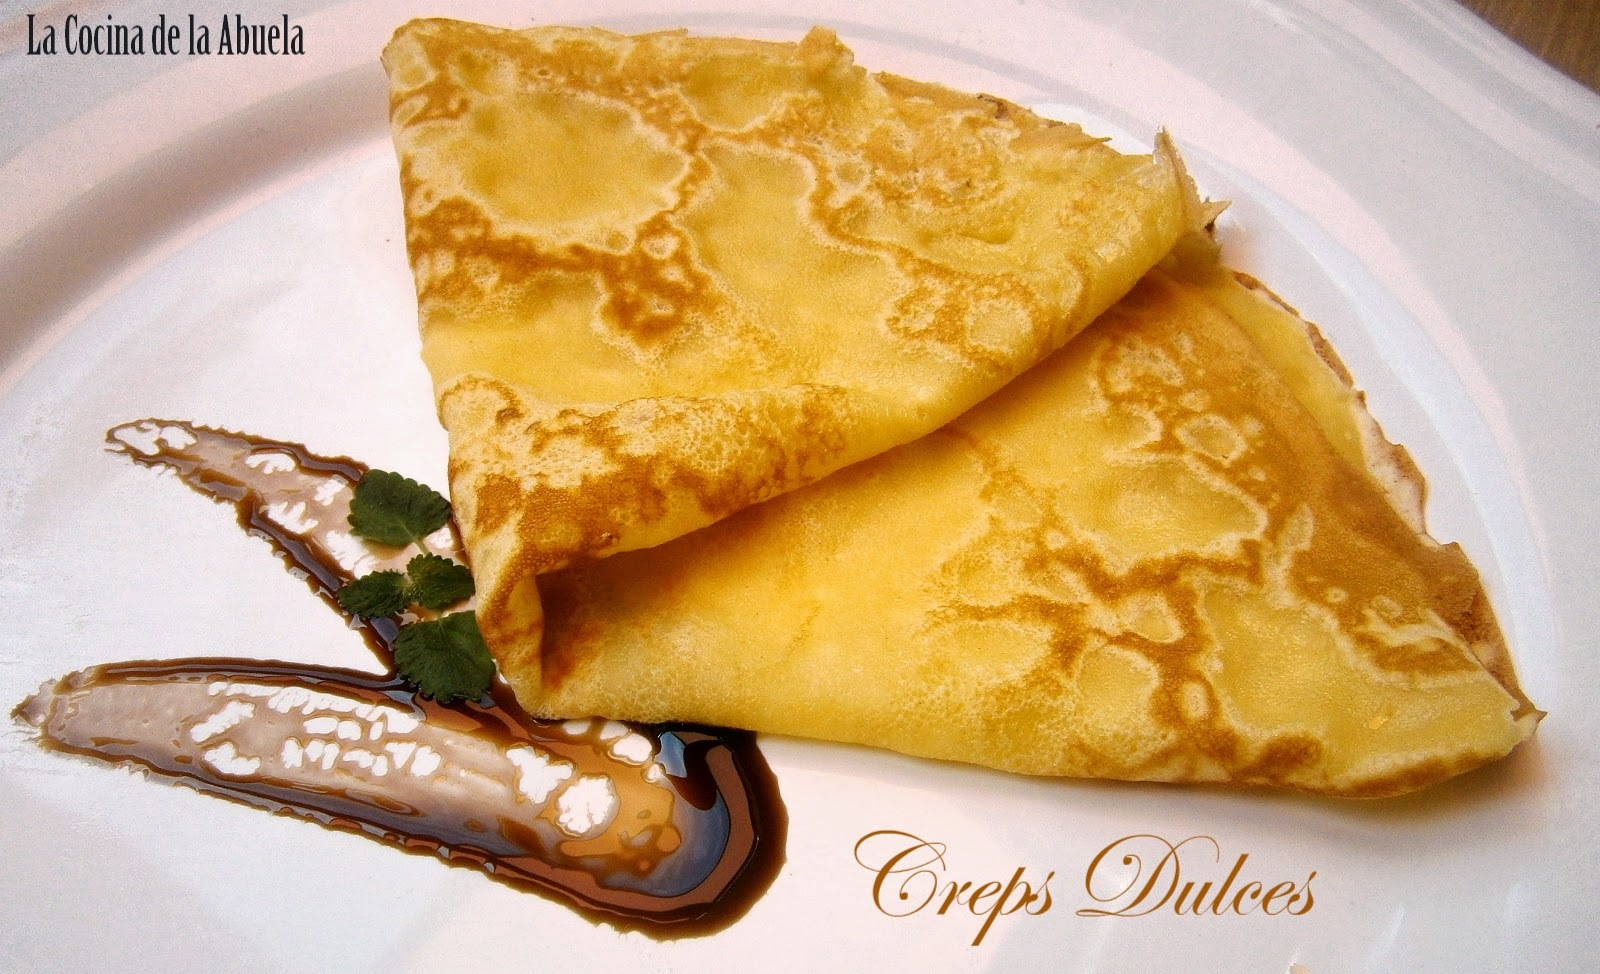 Creps o Crepes Dulces.